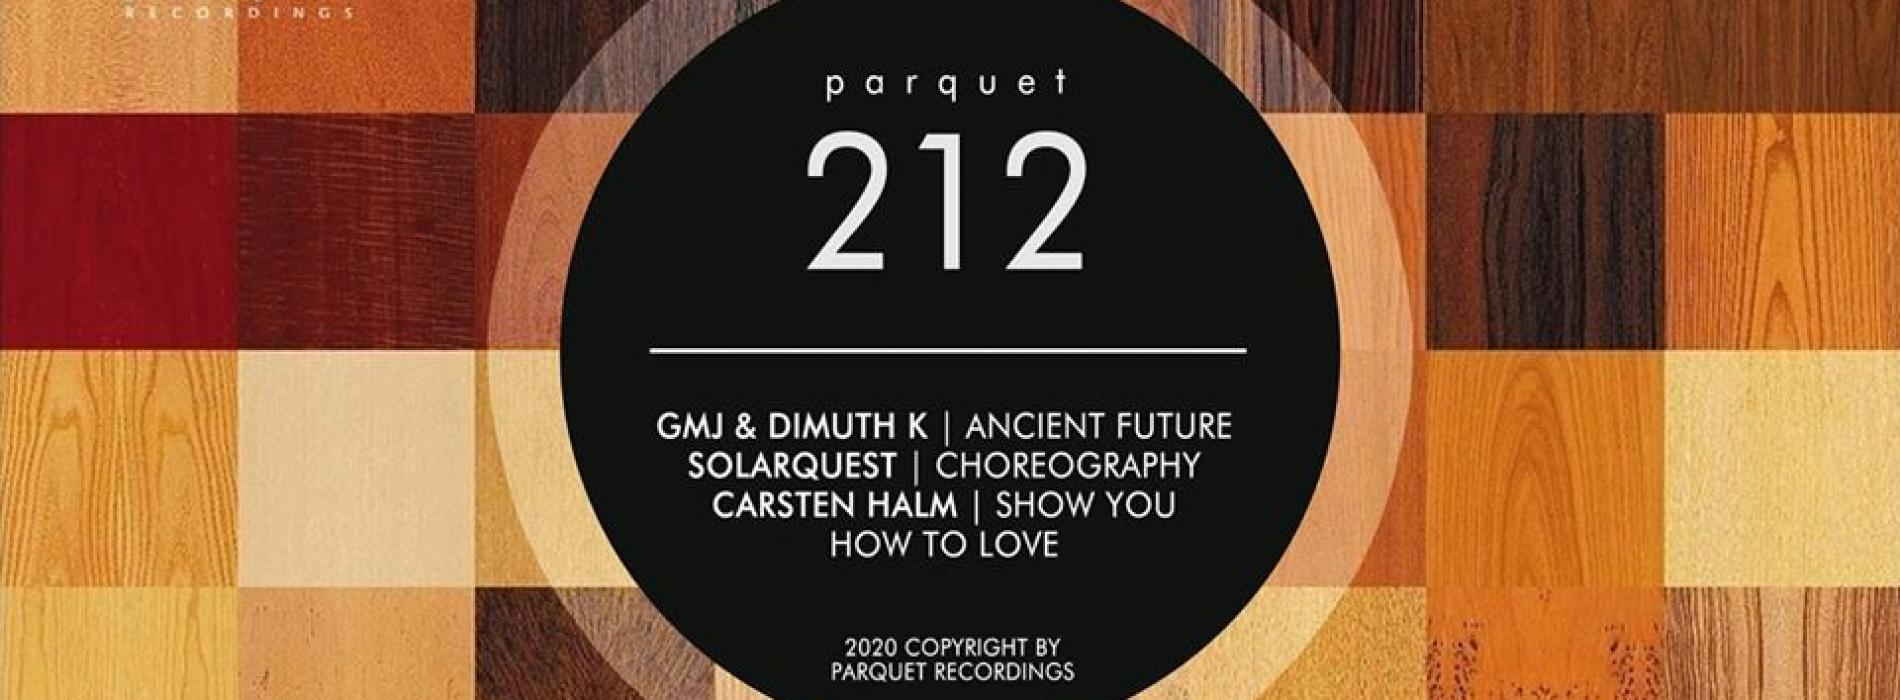 GMJ & Dimuth K – Ancient Future